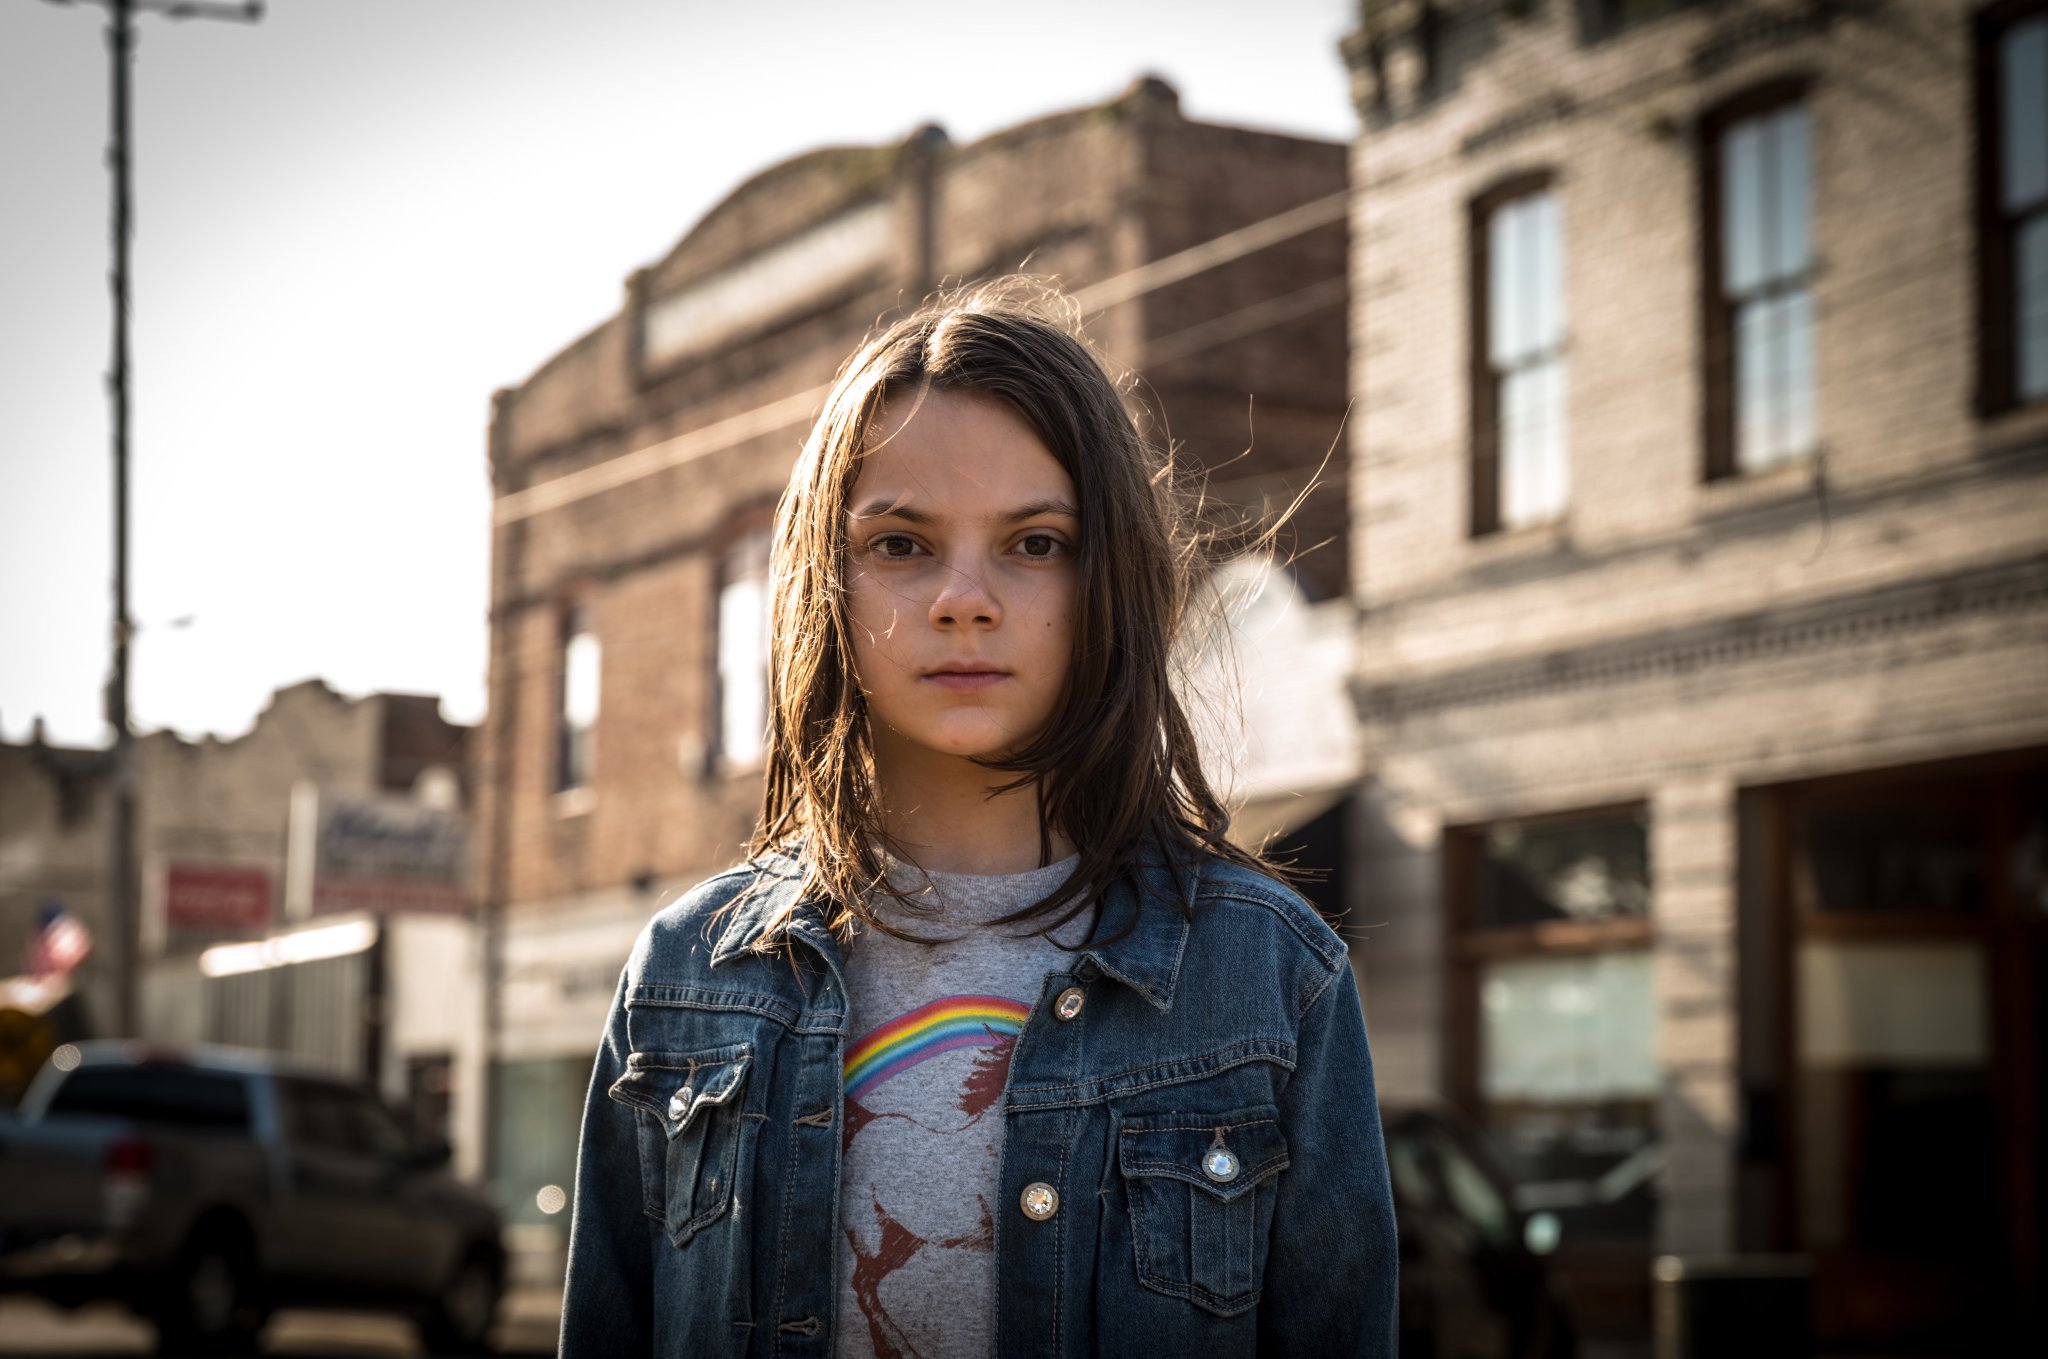 X-23 Spinoff Movie: Logan Director James Mangold Updates